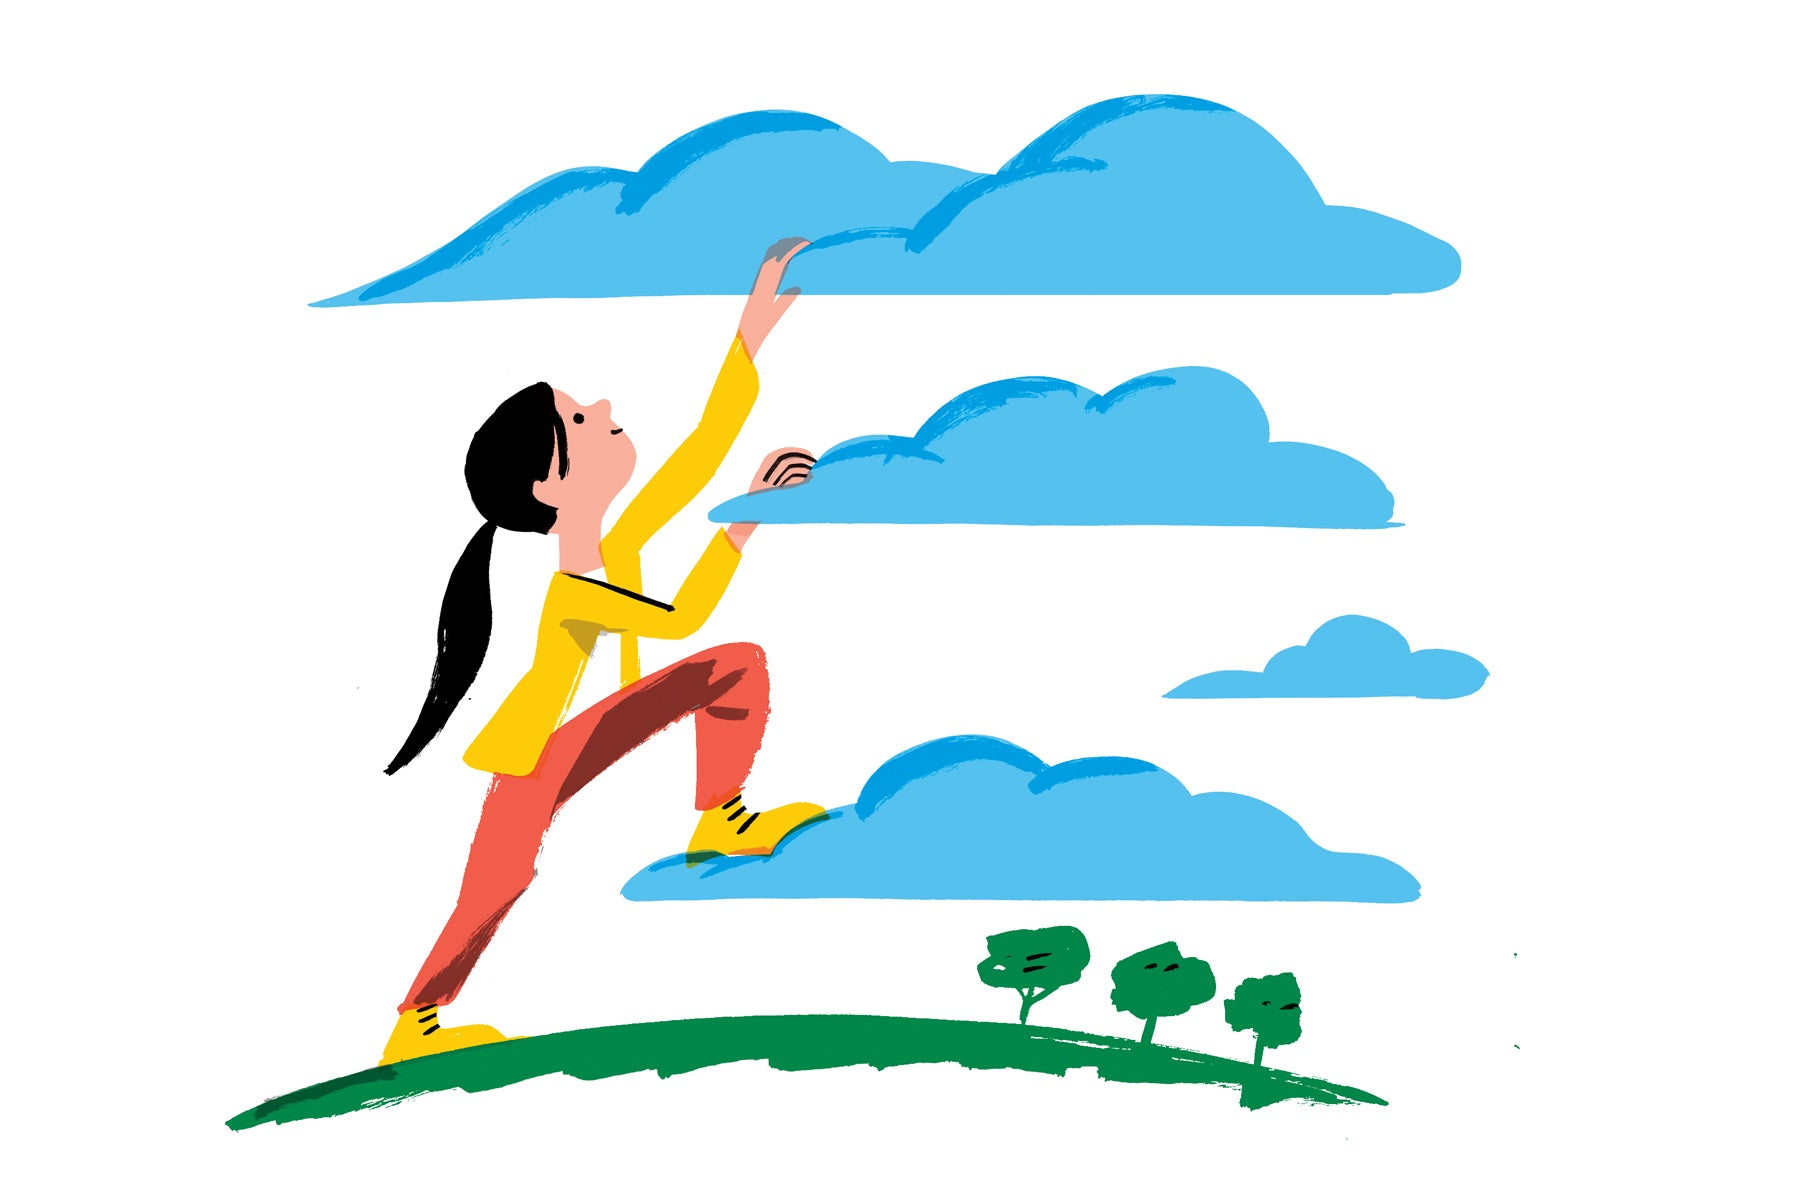 Illustration of a young girl with brown hair and a yellow shirt on with clouds above her. The clouds are staggered and she is climbing them like steps. This is a metaphor for realizing her dreams and future goals.